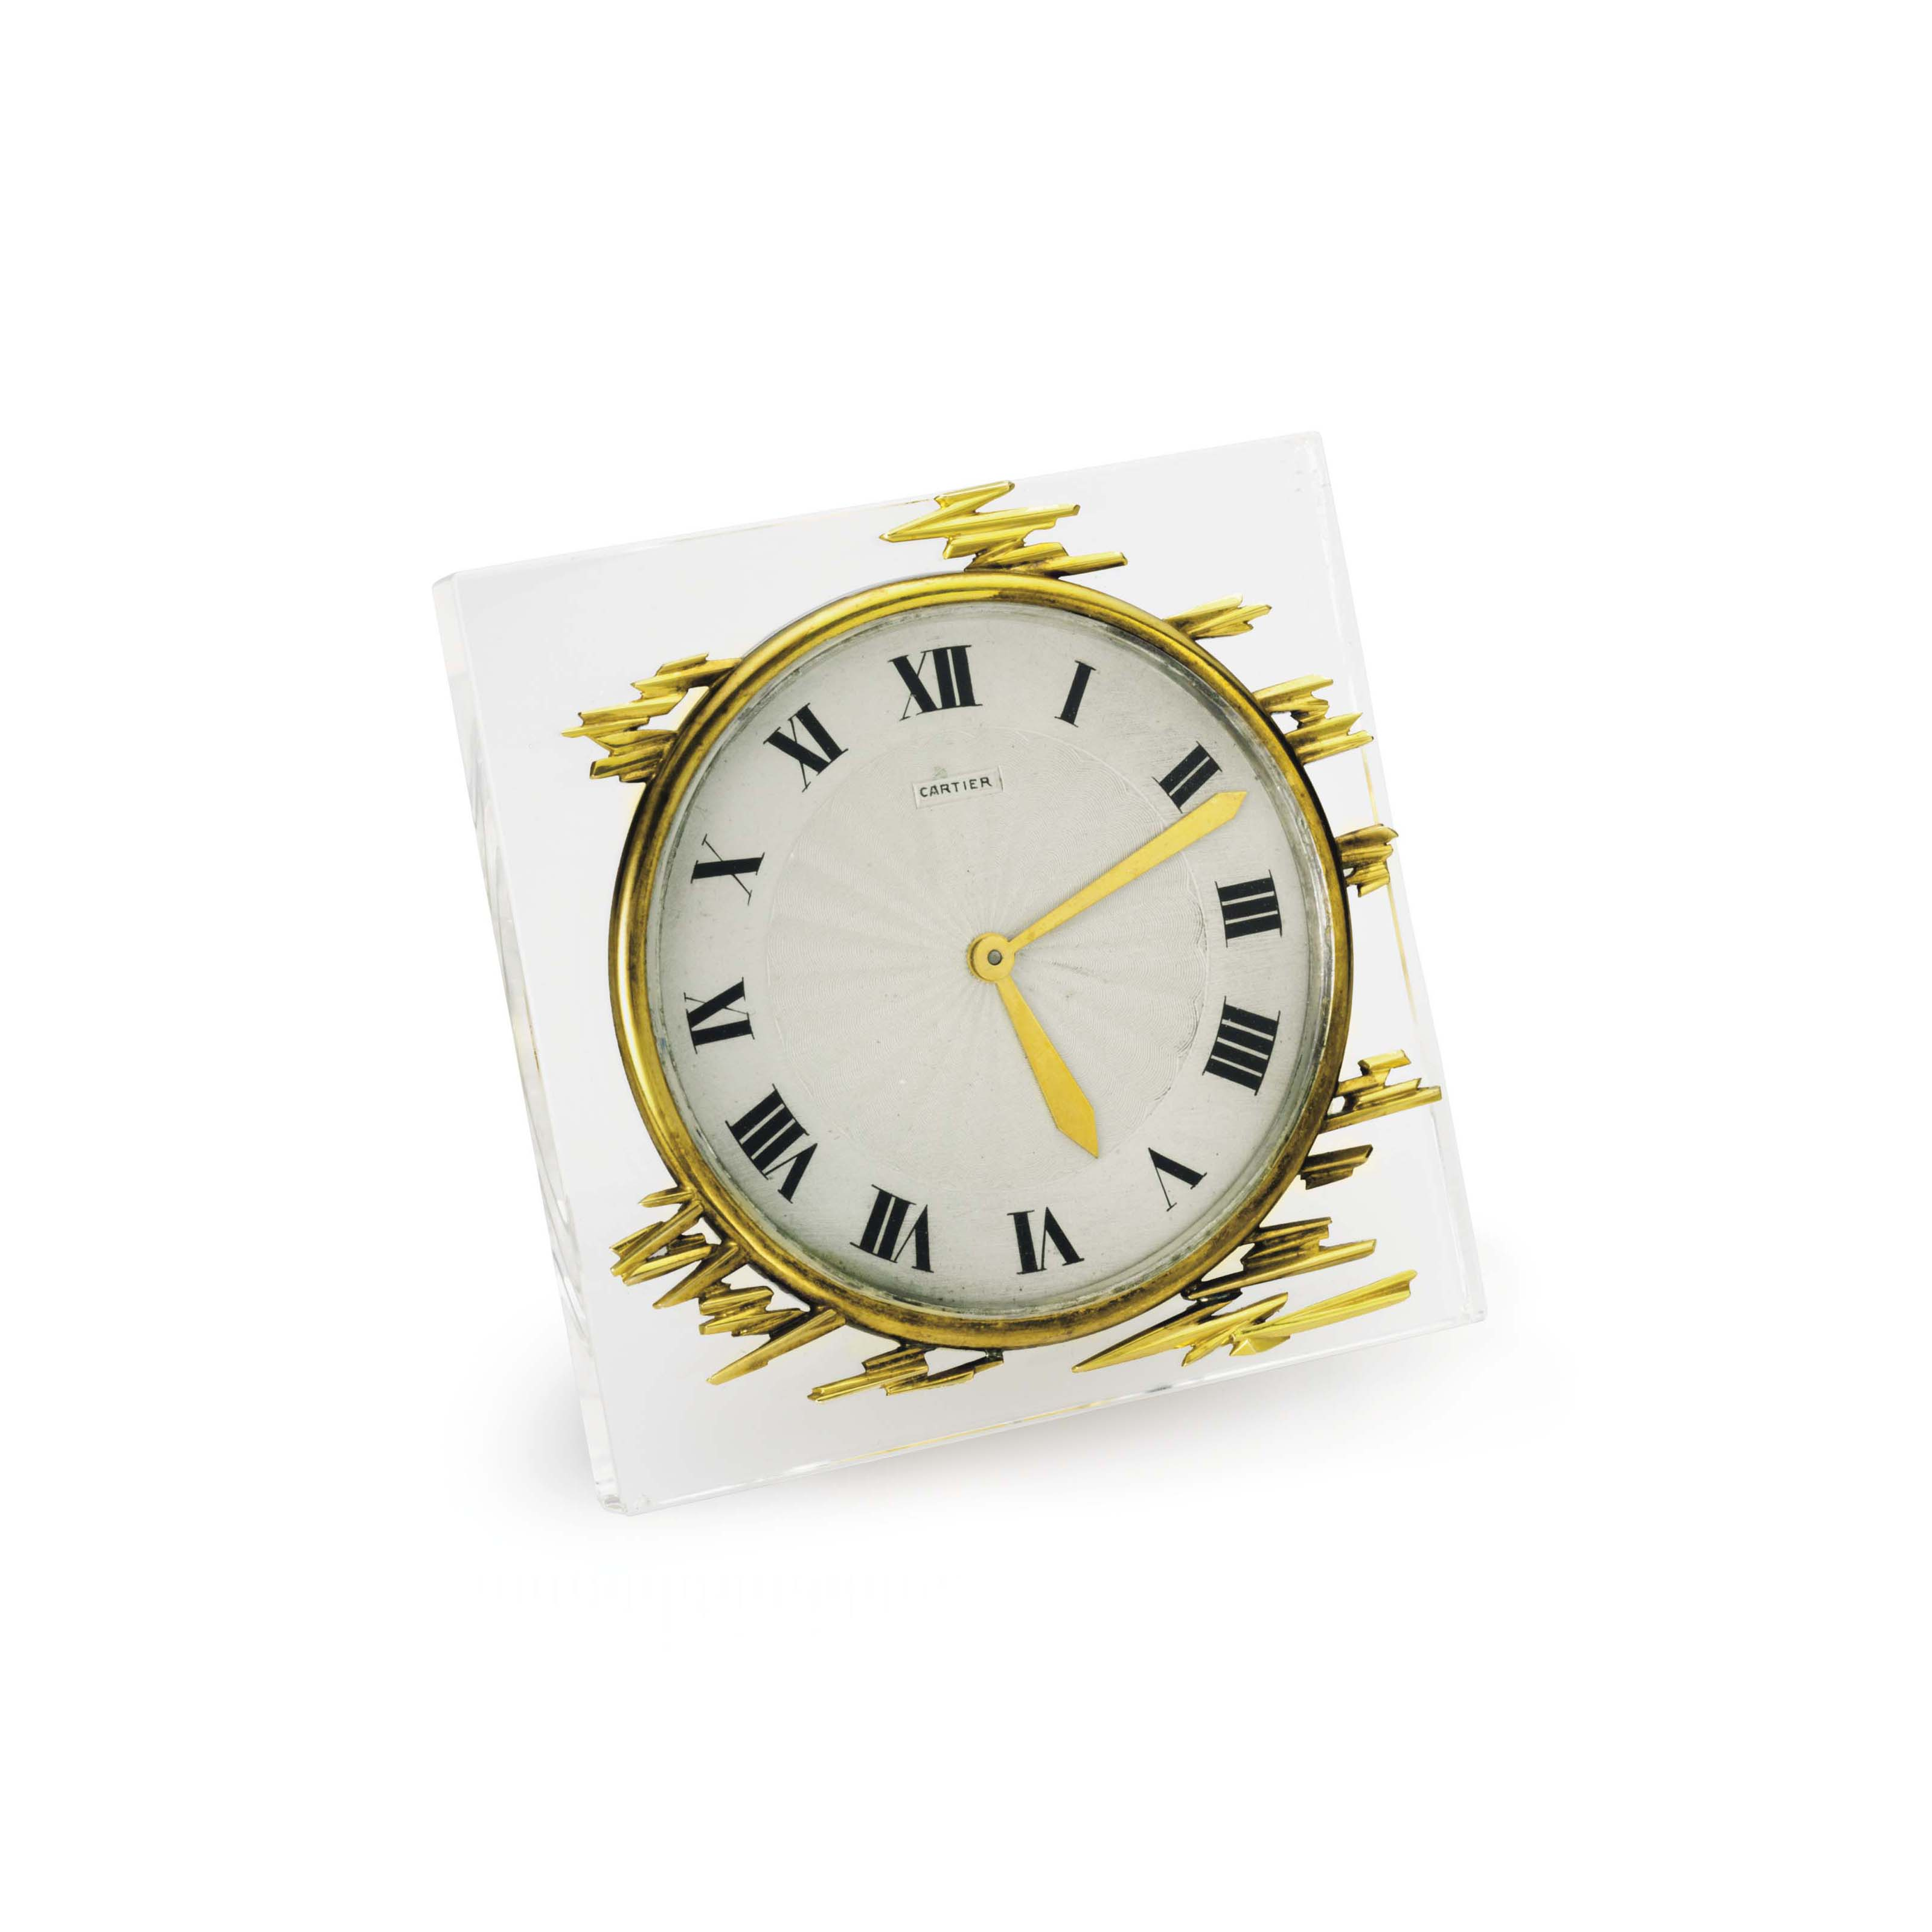 A ROCK CRYSTAL AND GOLD DESK CLOCK, BY CARTIER